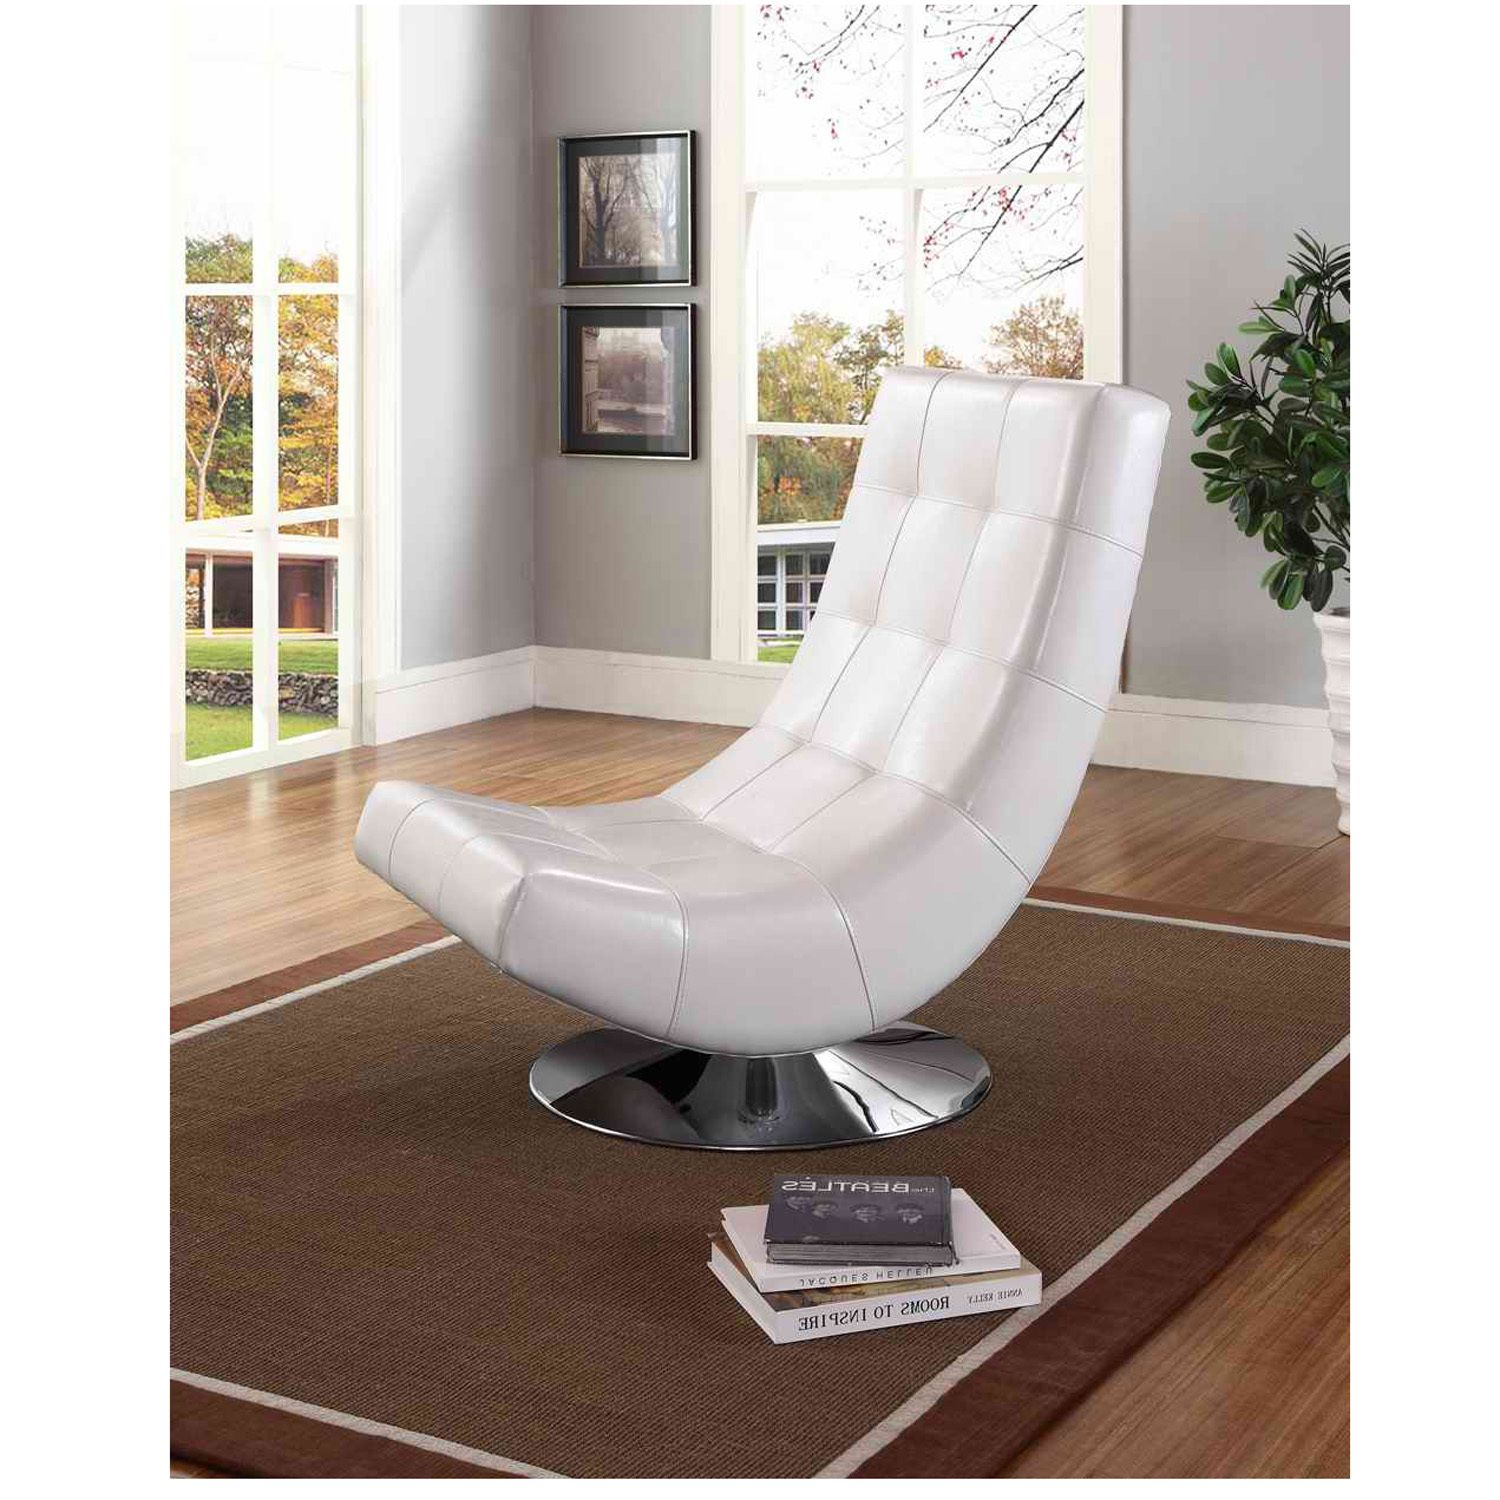 Best Modern White Pu Leather Accent Chair Upholstered Swivel 640 x 480